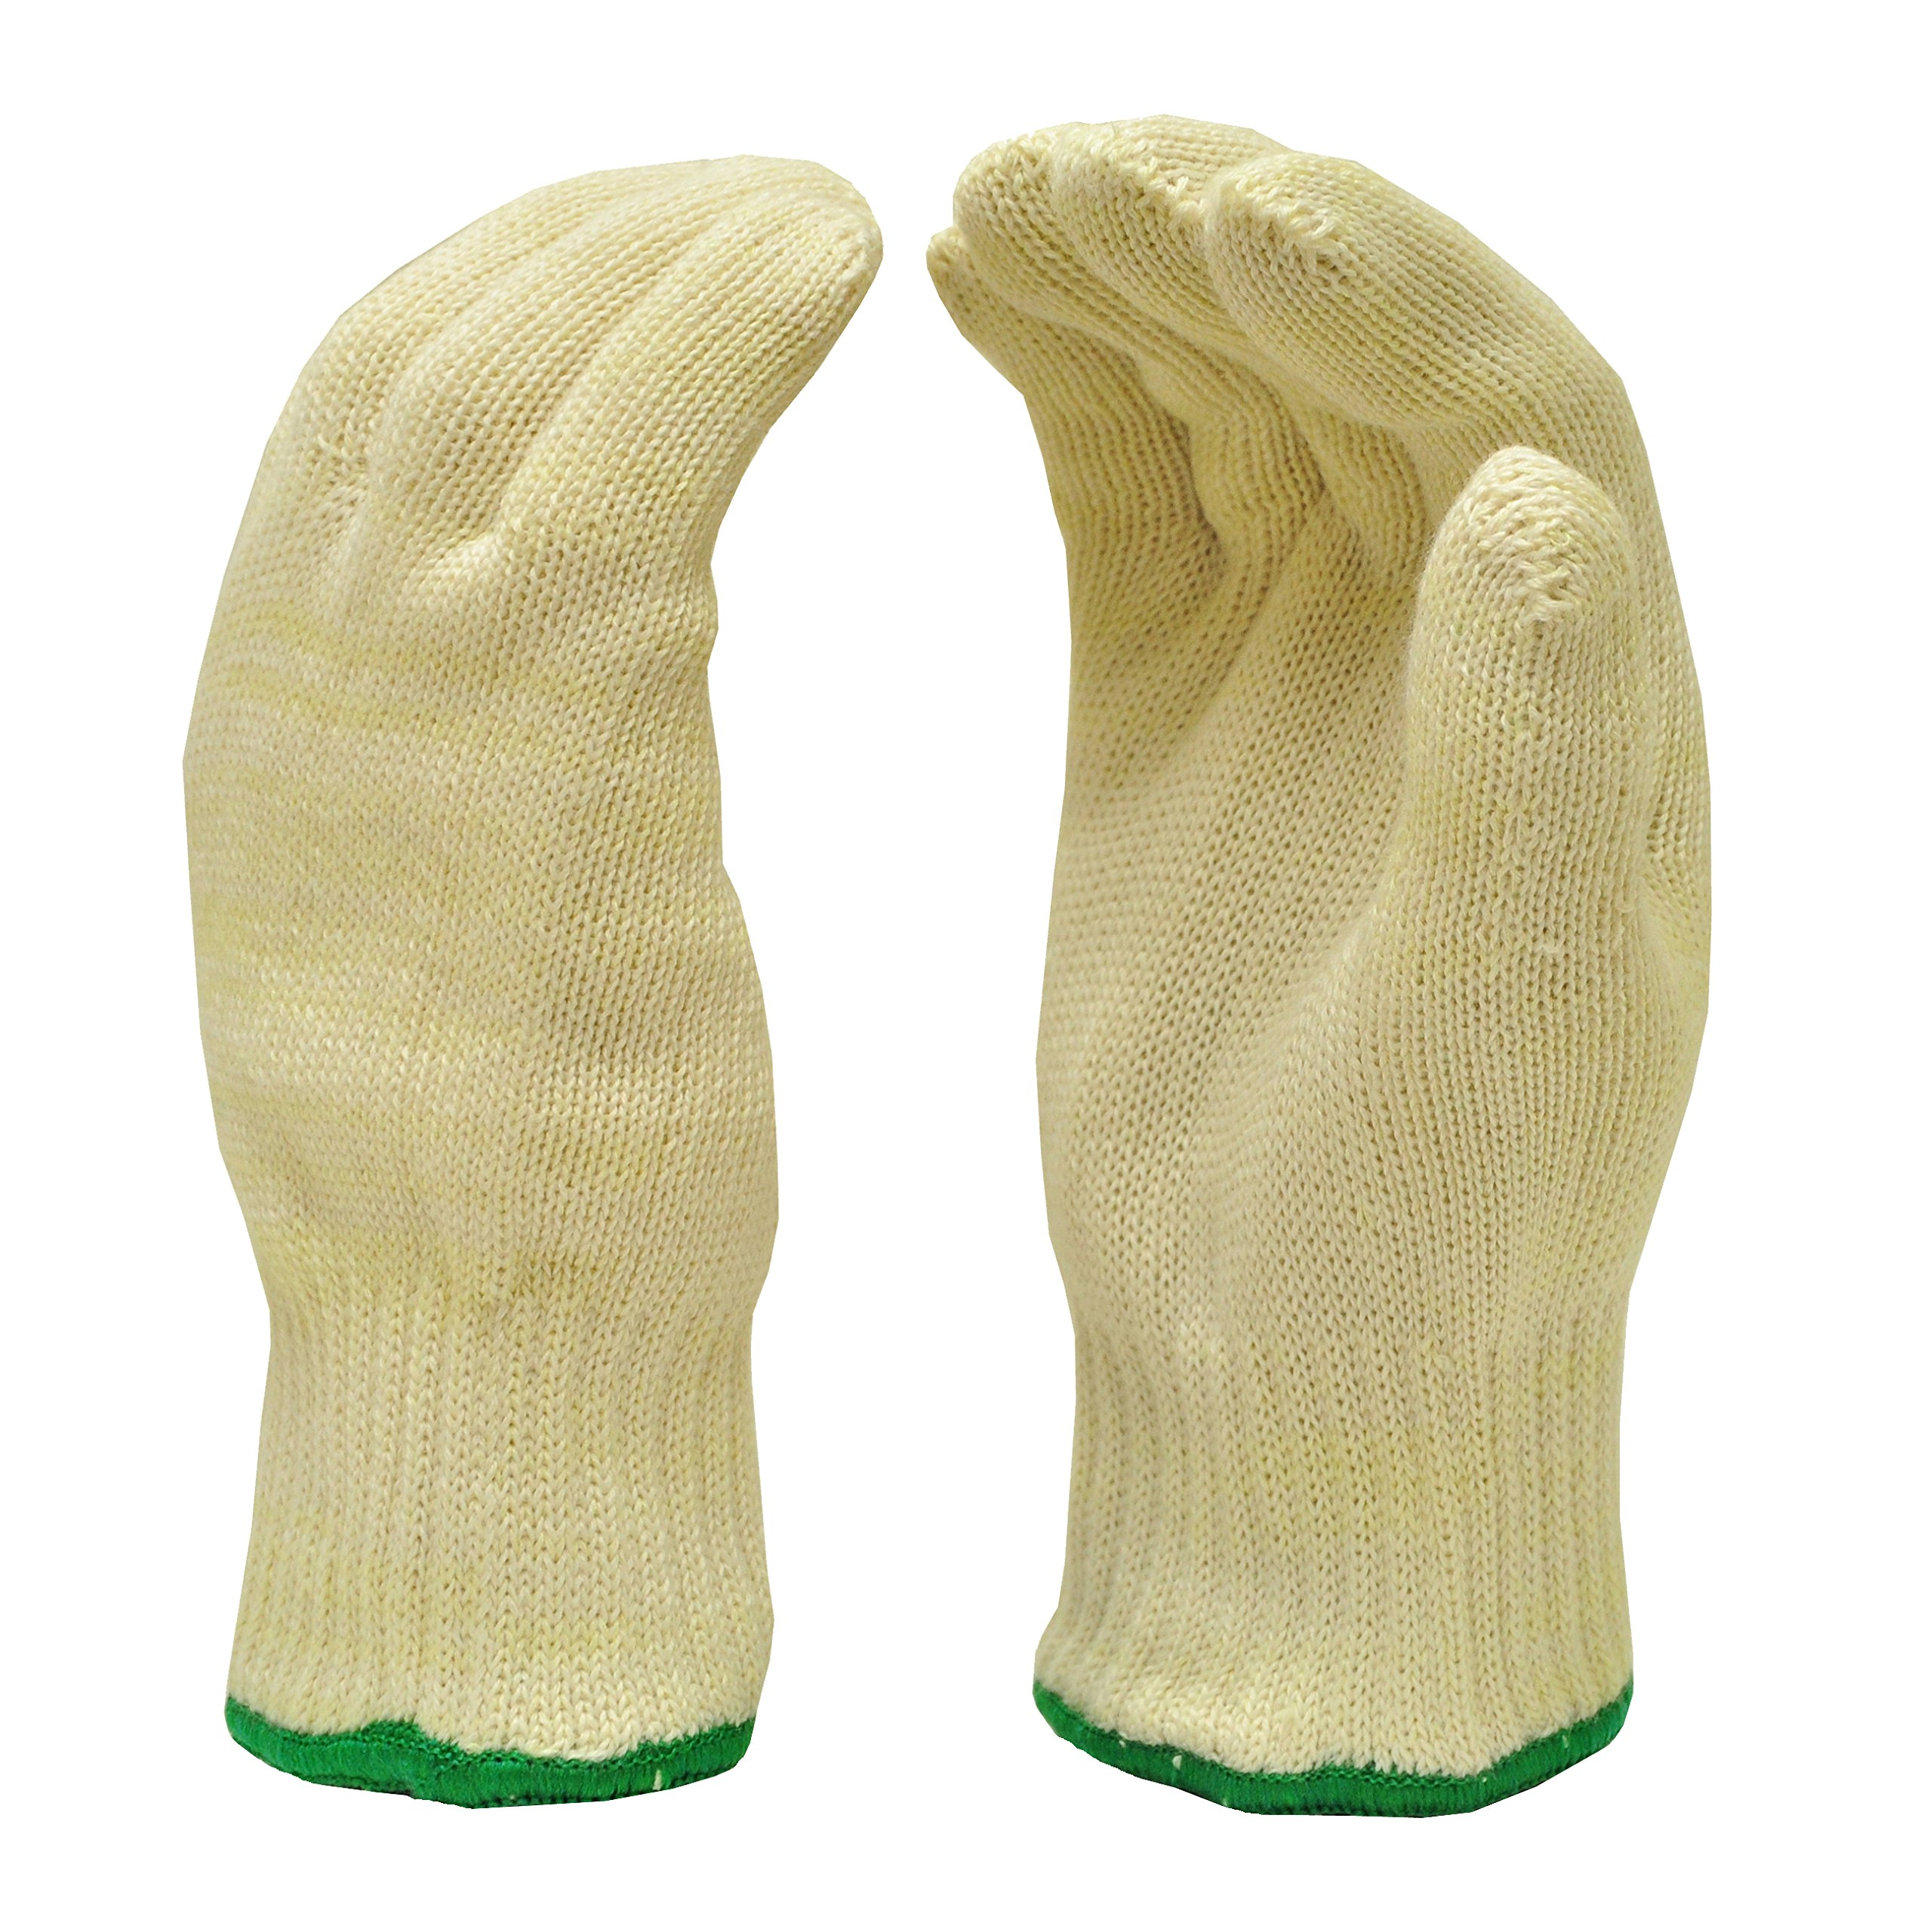 GF Gloves 1689M-12 Heat Resistant Glove Commercial Grade, Medium (Pack of 12)